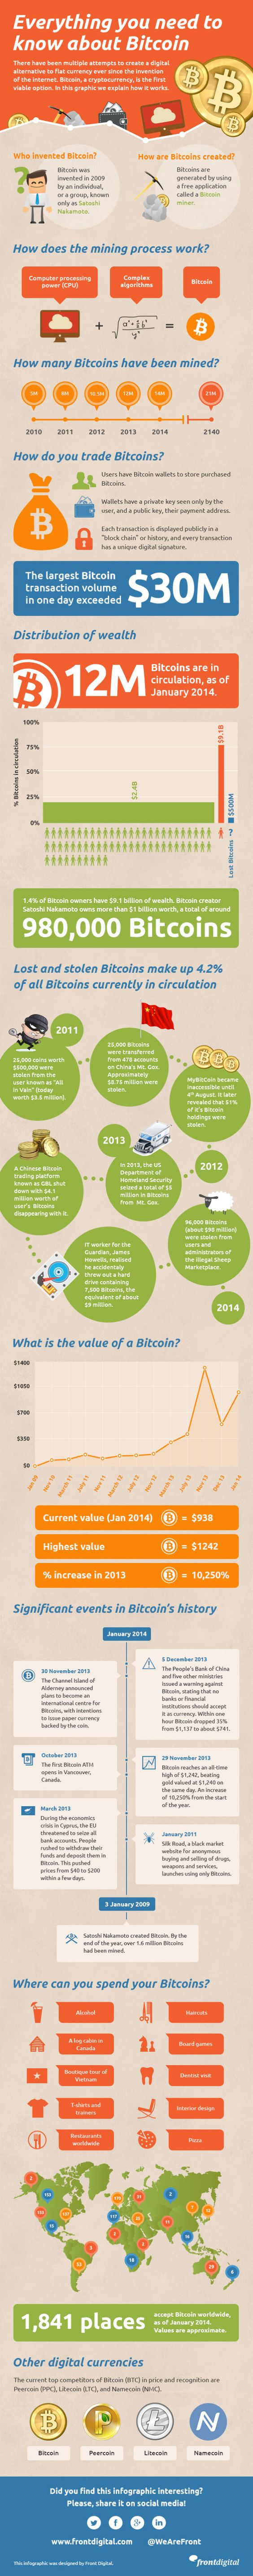 Everything you need to know about Bitcoin #infografia #infographic #internet